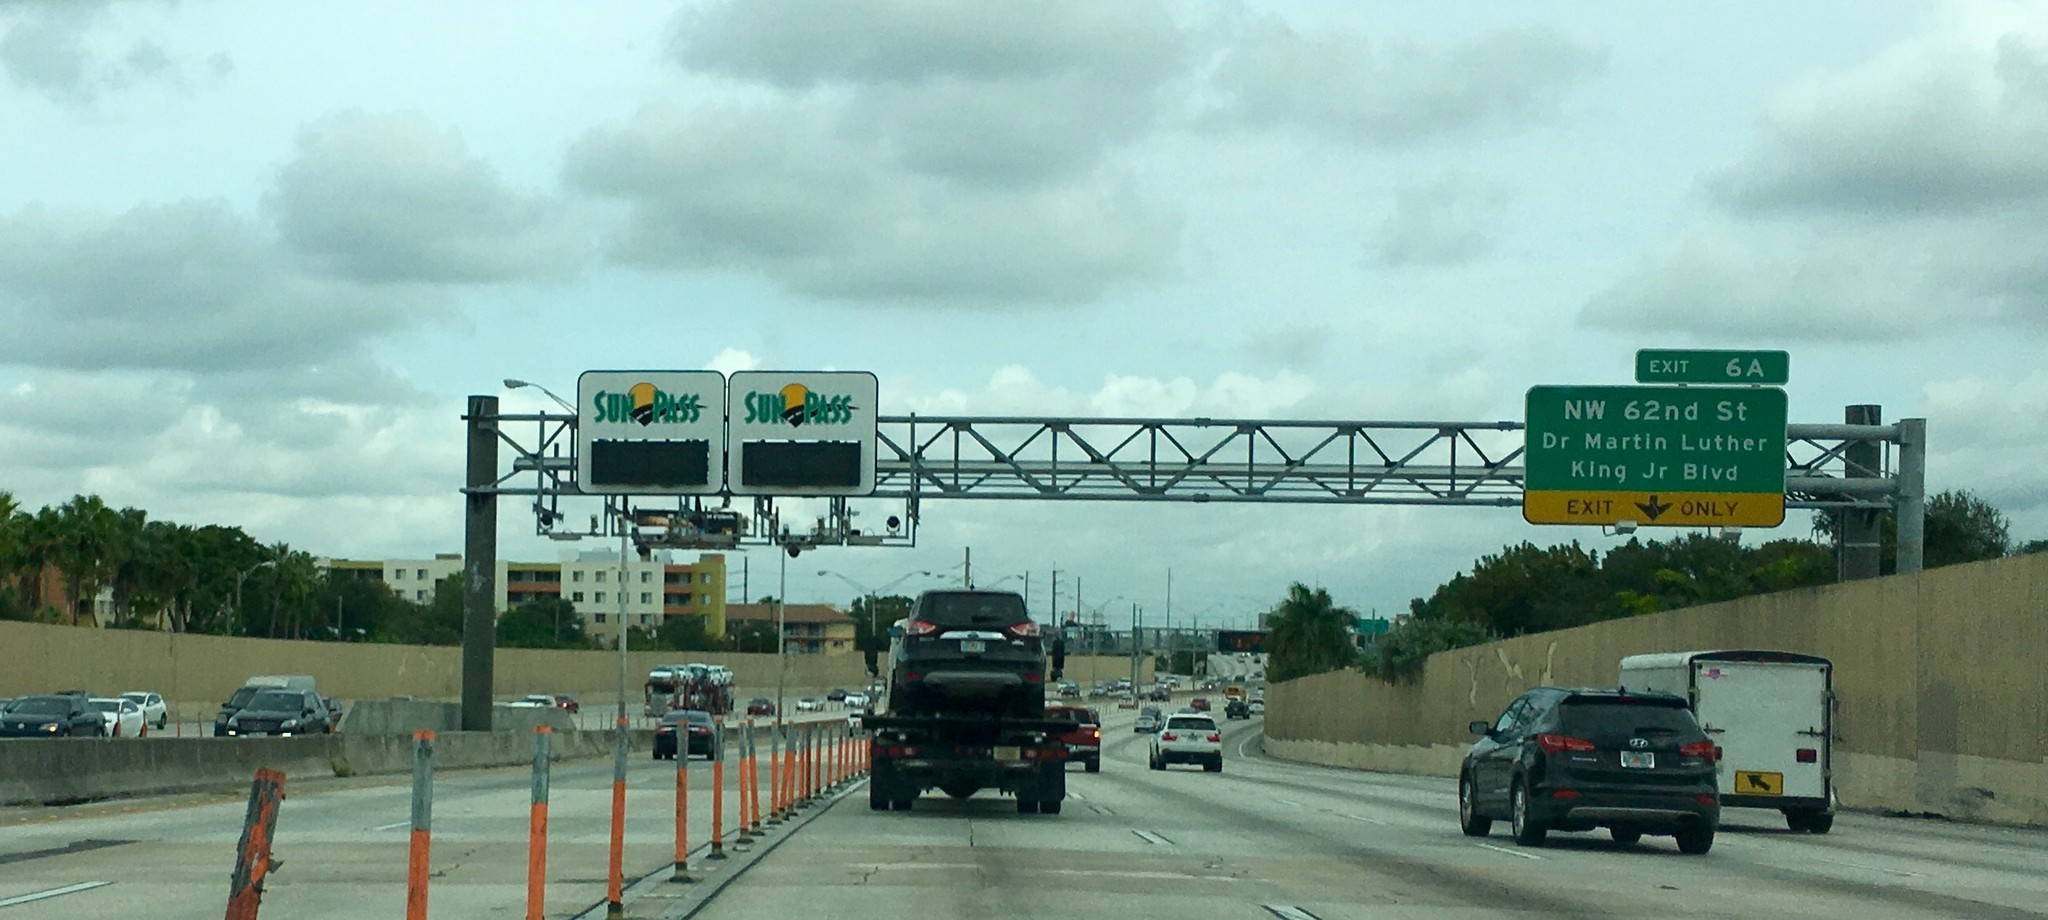 Fhp Cracking Down On Drivers Who Cut Into I 95 Express